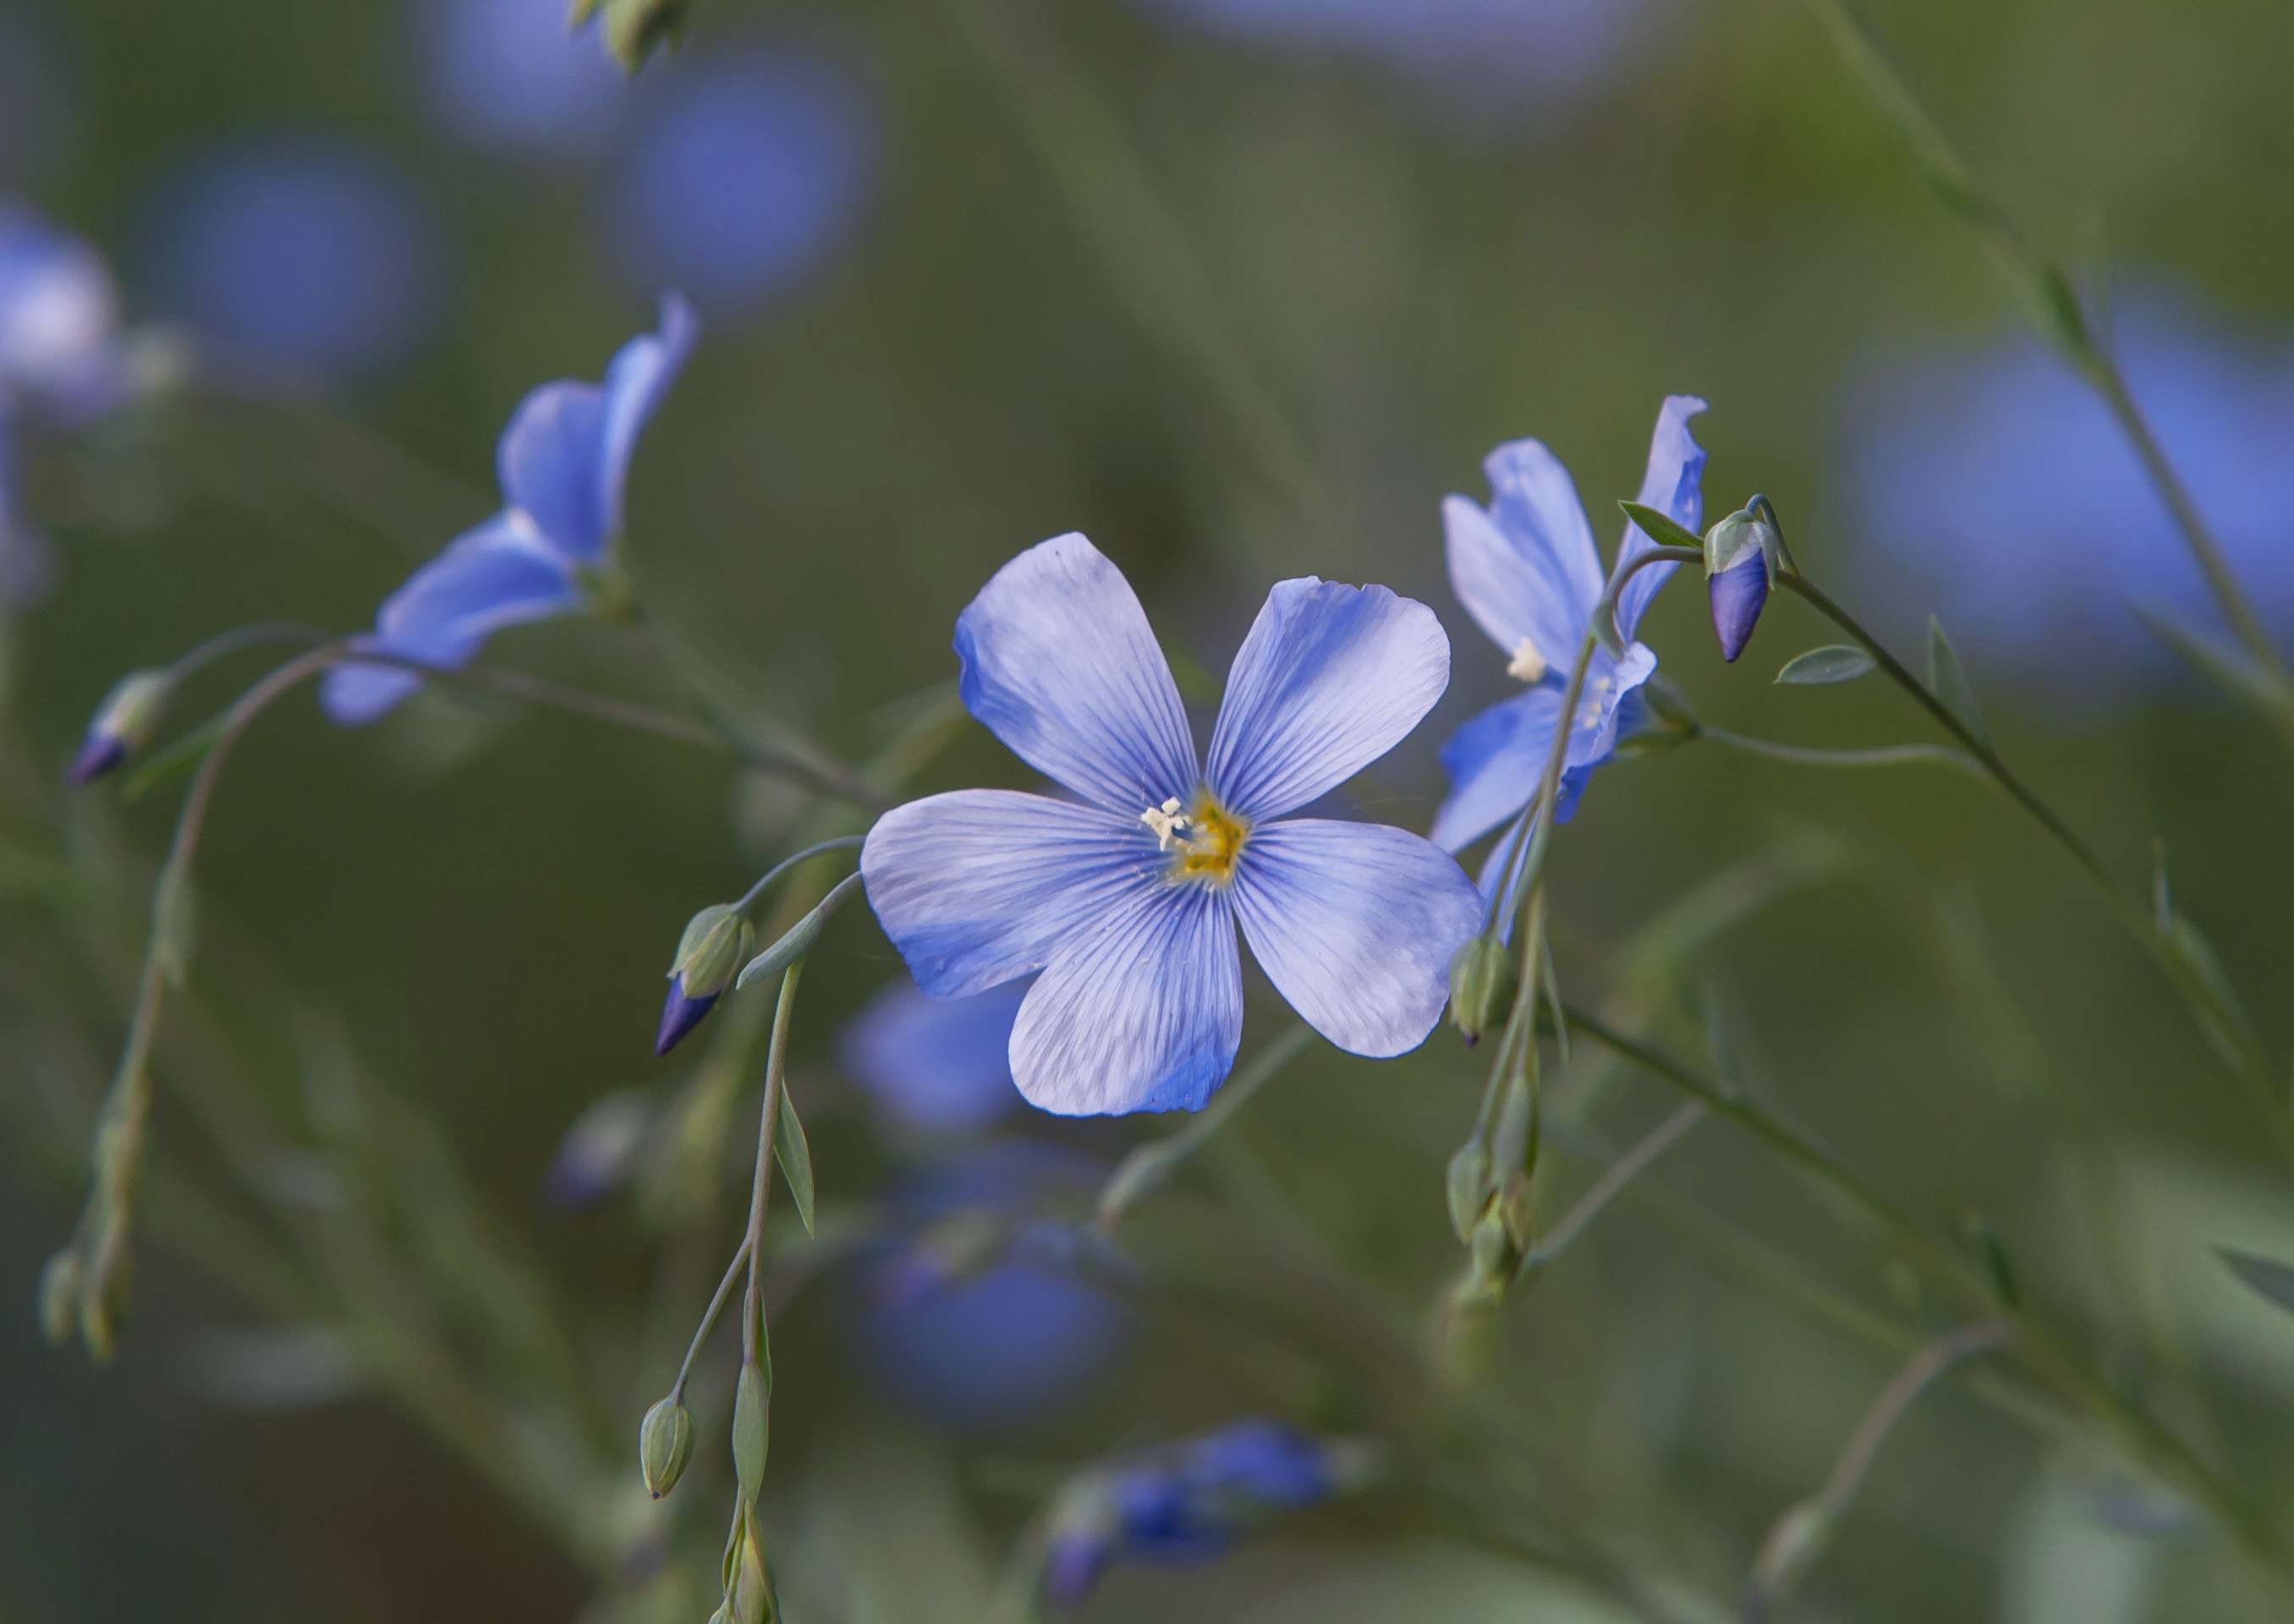 Flax plant with blue flower and buds closeup